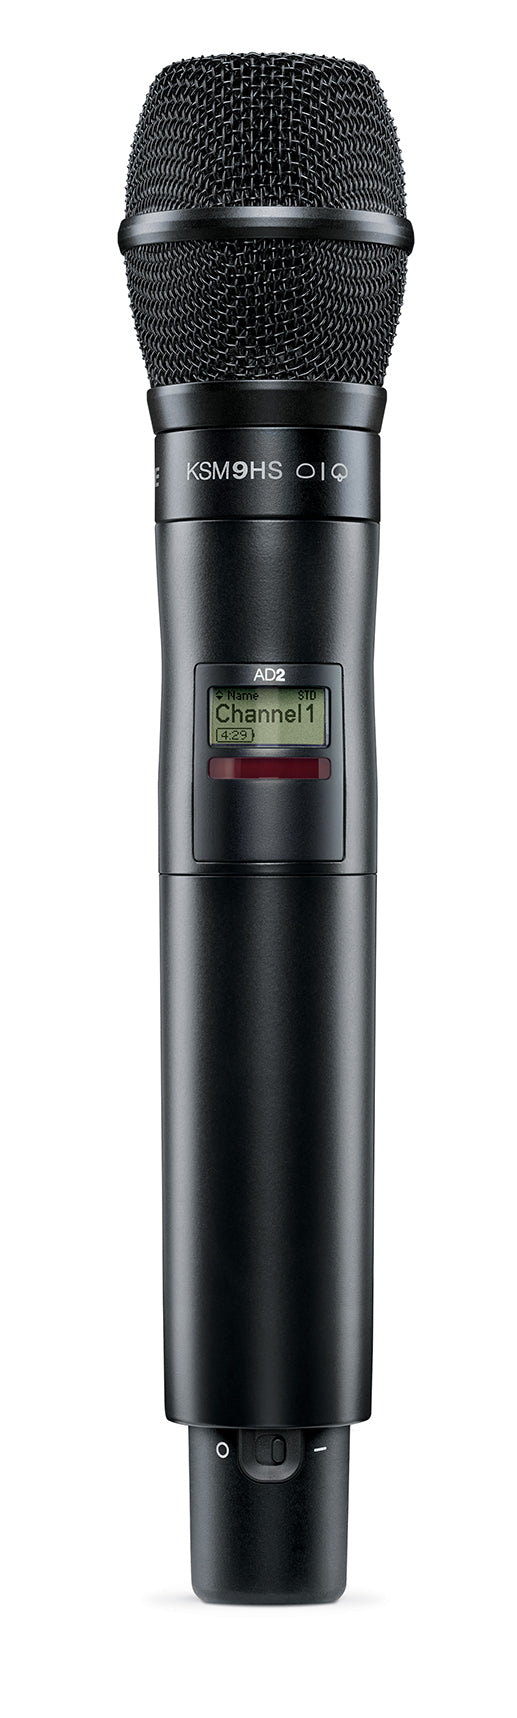 Shure AD2/K9HSB Axient Digital Handheld Transmitter W/ KSM9HS Cartridge - Black